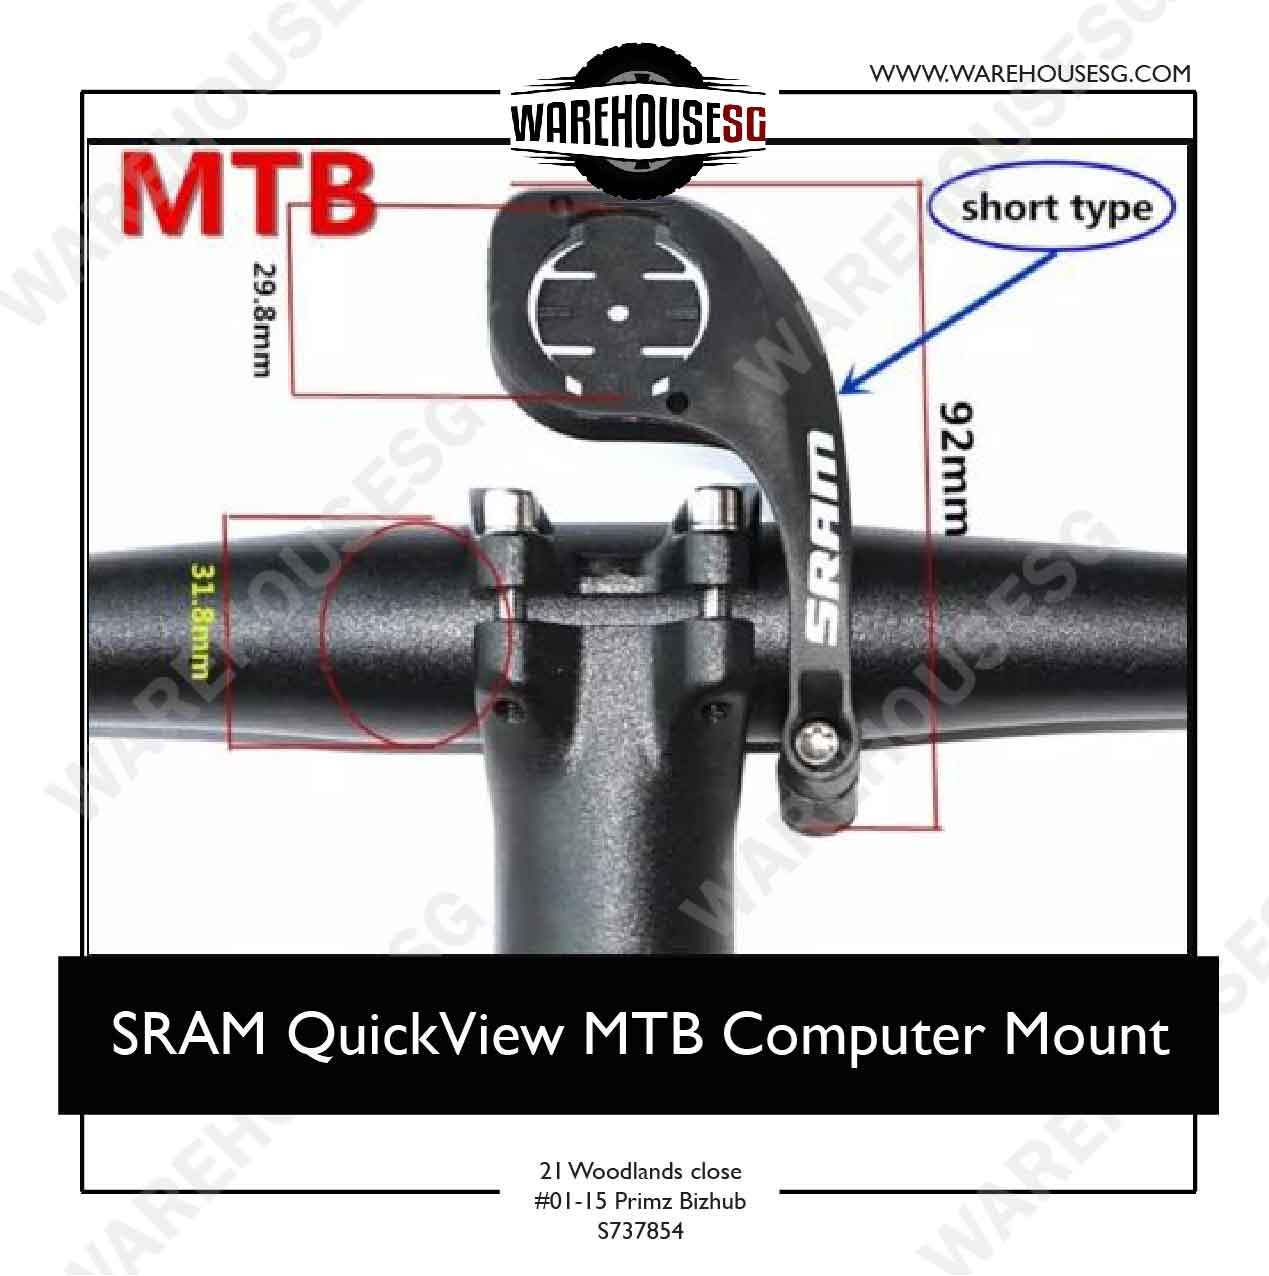 SRAM MTB QuickView Computer Mount